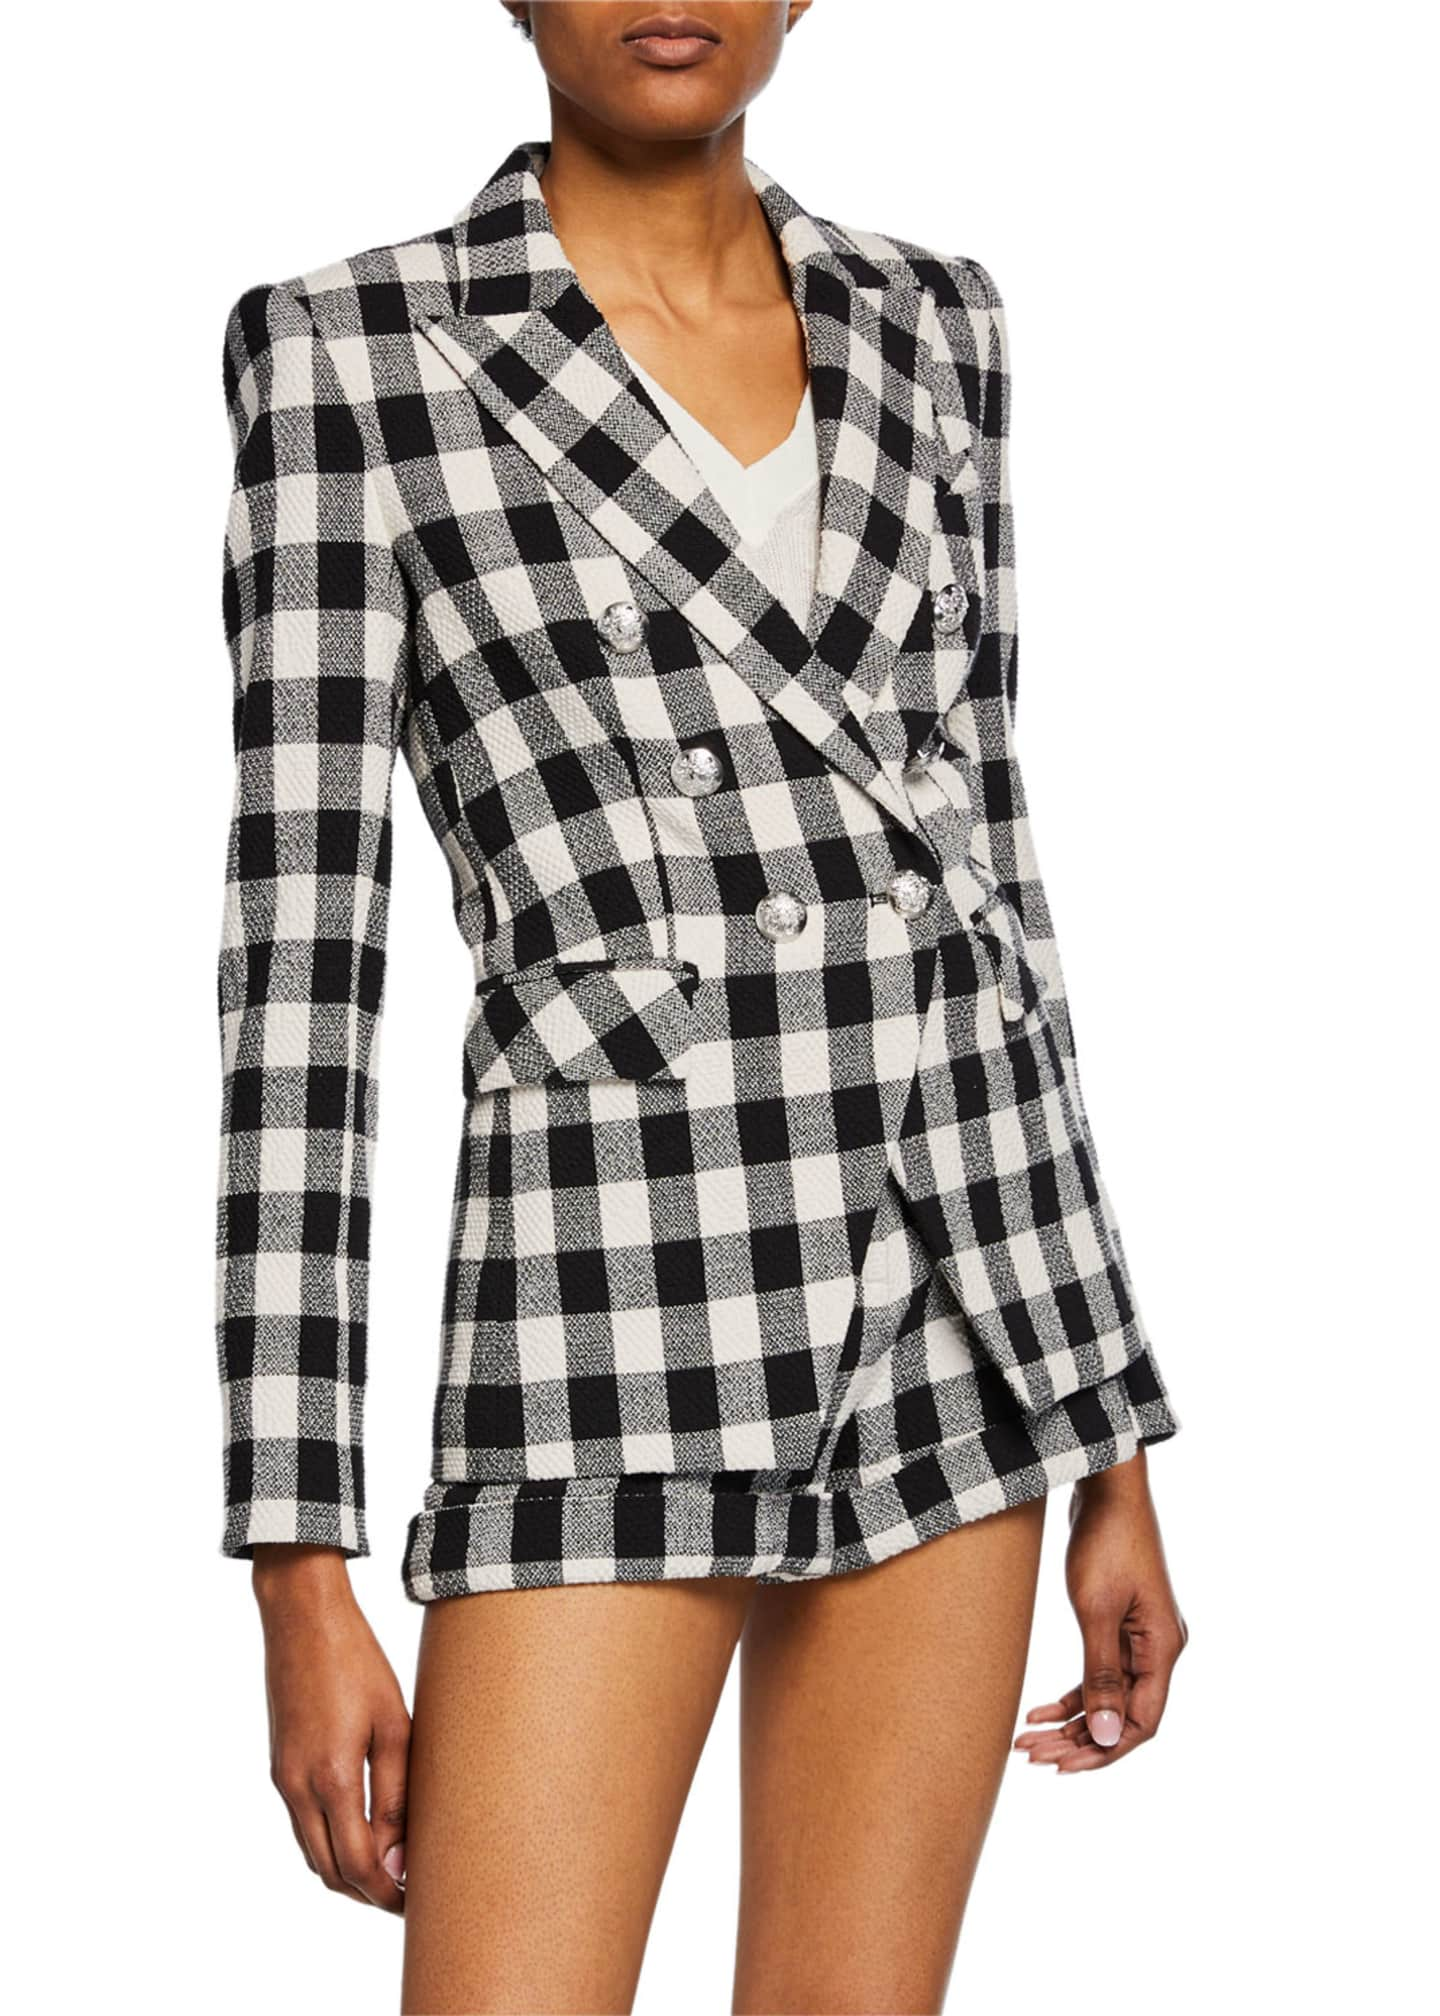 Veronica Beard checked jacket and short